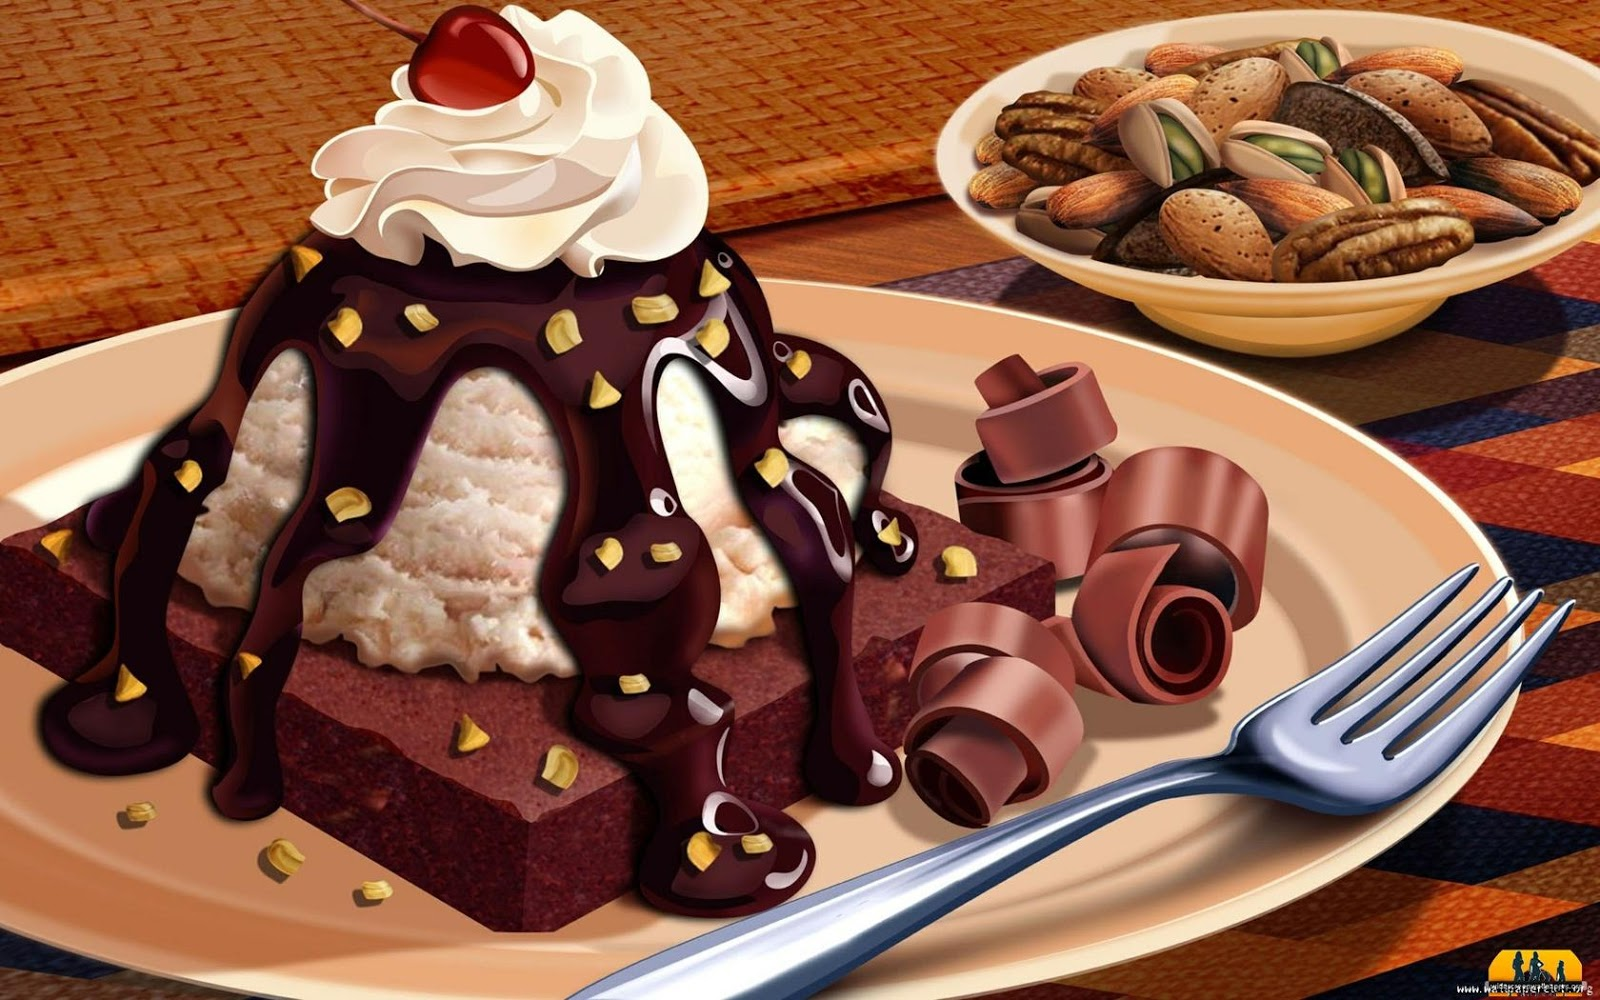 Ice Cream Cake Hd Images : Cake Wallpapers Desktop Wallpapers